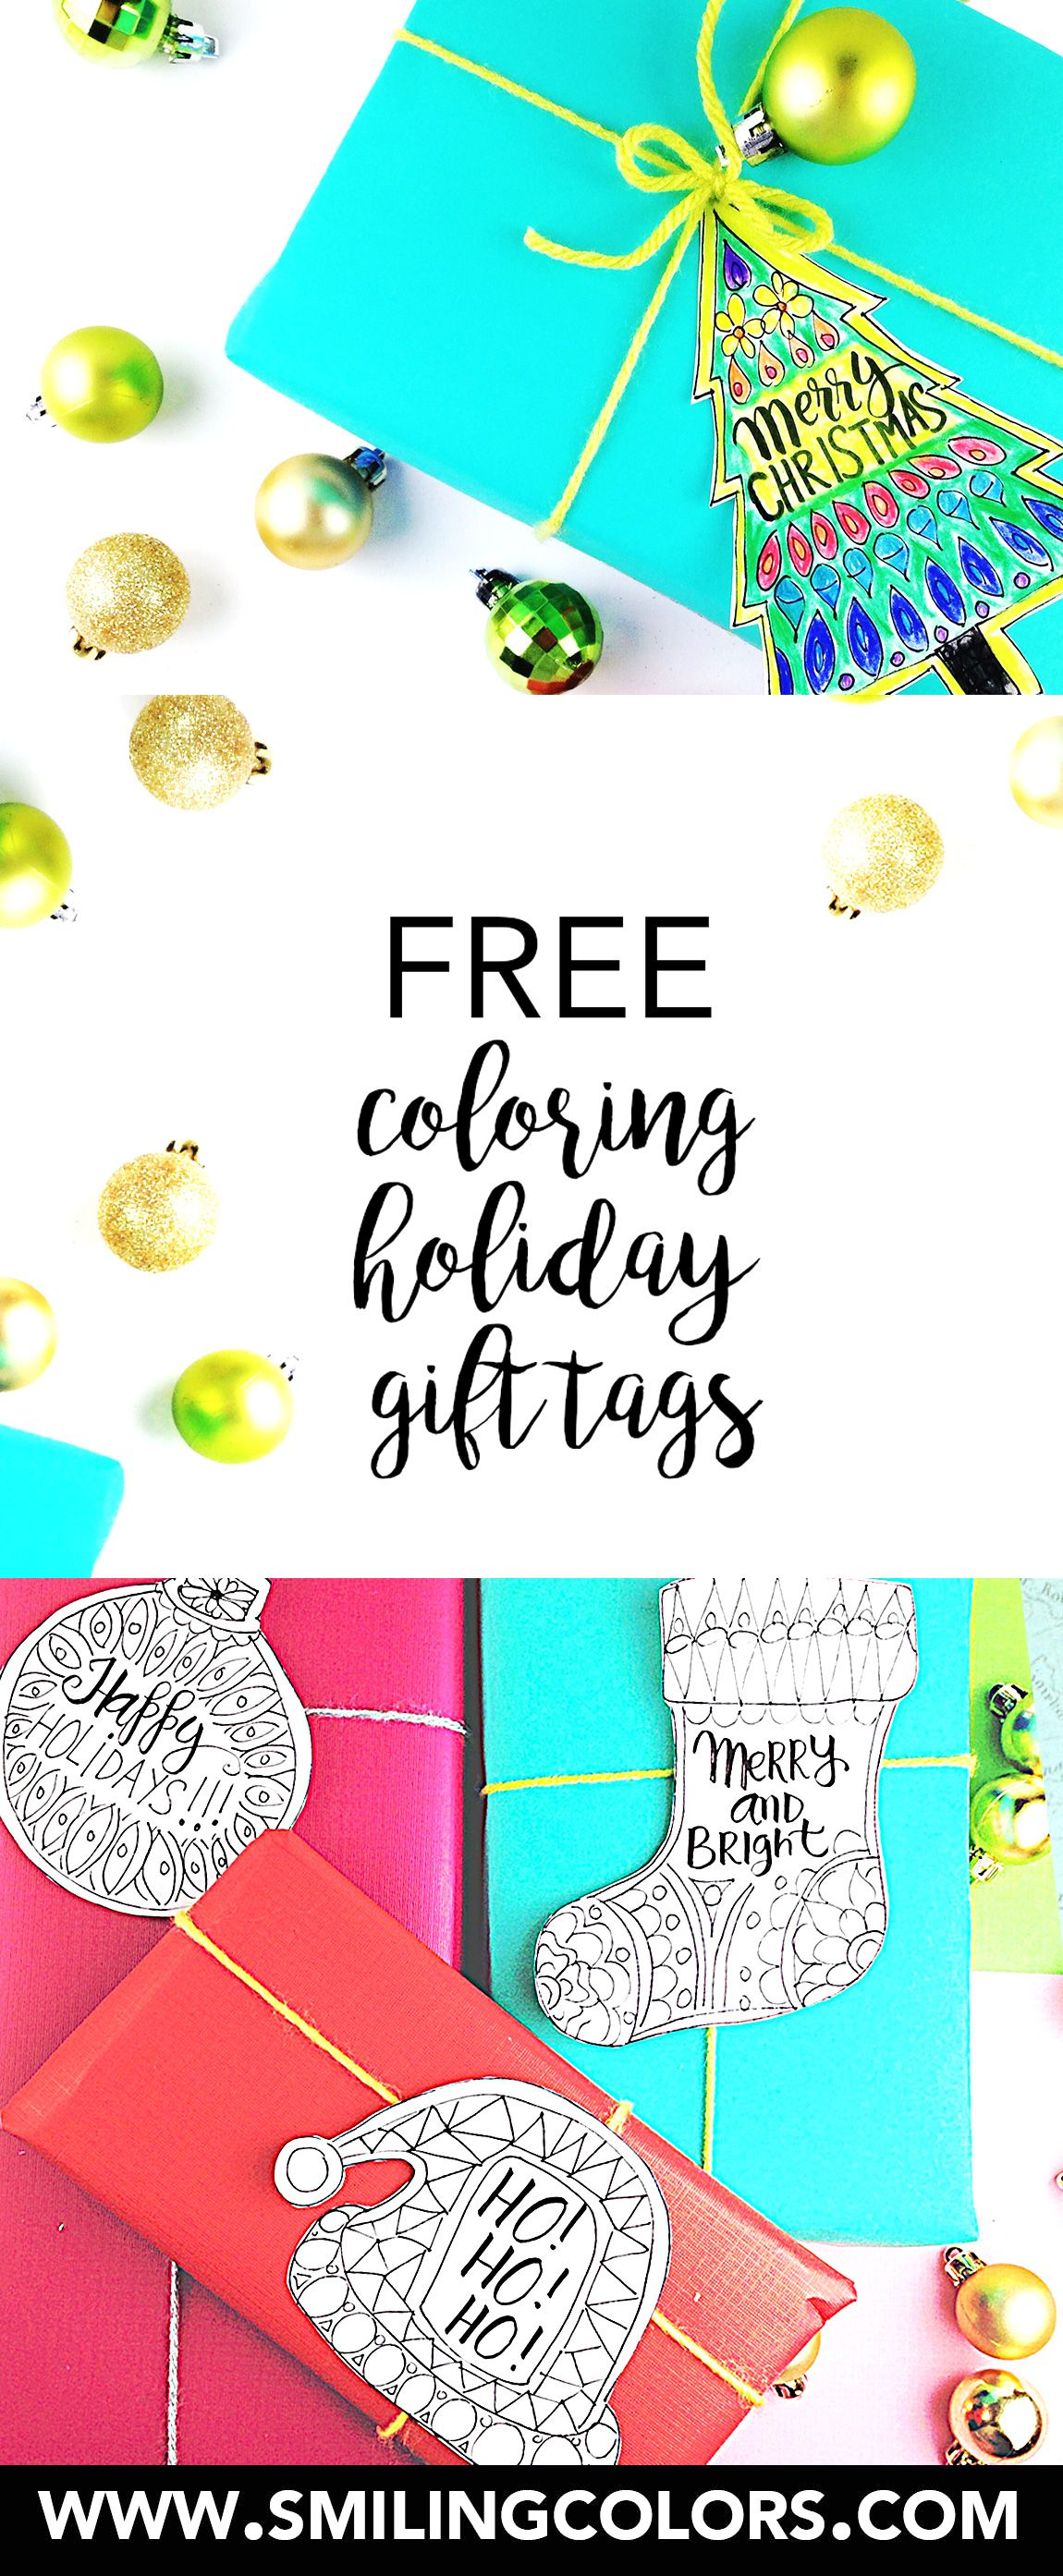 A set of 4 free coloring holiday gift tags that you can download a set of 4 free coloring holiday gift tags that you can download and print at negle Choice Image